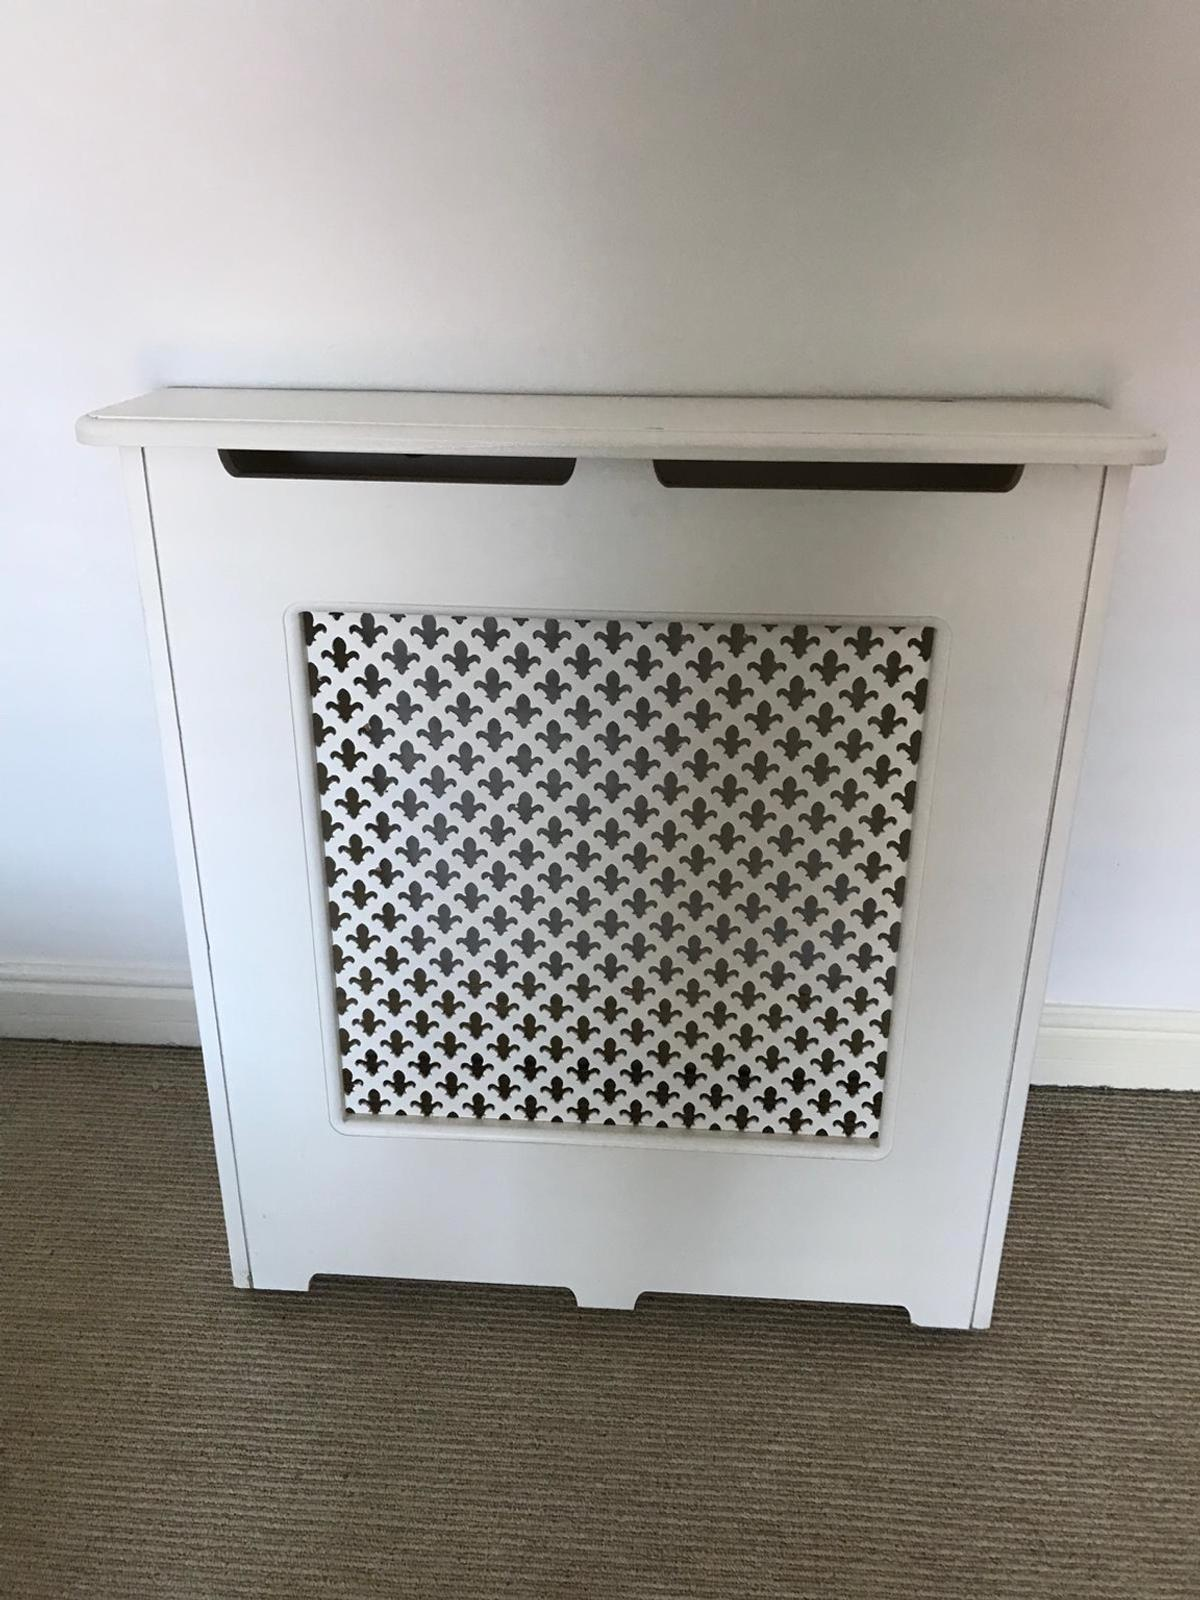 Small Radiator Cover Cambridge Style In M33 Trafford For 20 00 For Sale Shpock